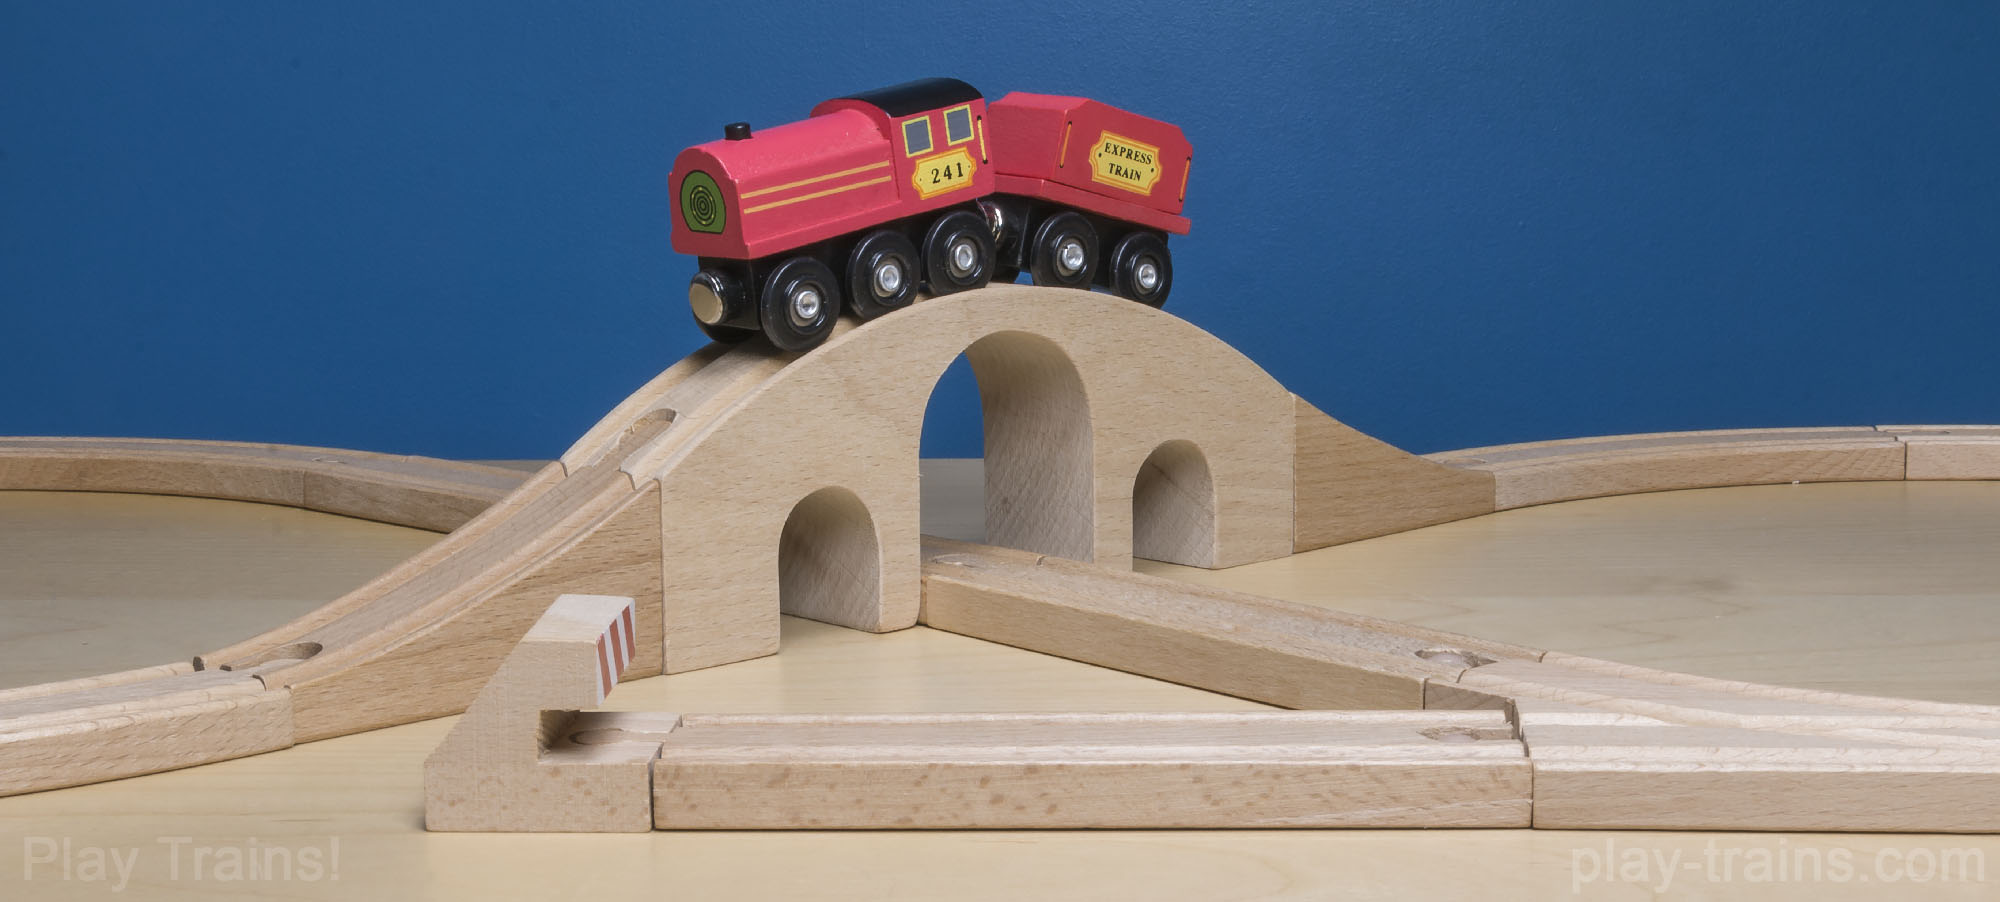 d8c4b2201 Melissa   Doug Figure 8 Wooden Train Set -- The Play Trains! Guide to